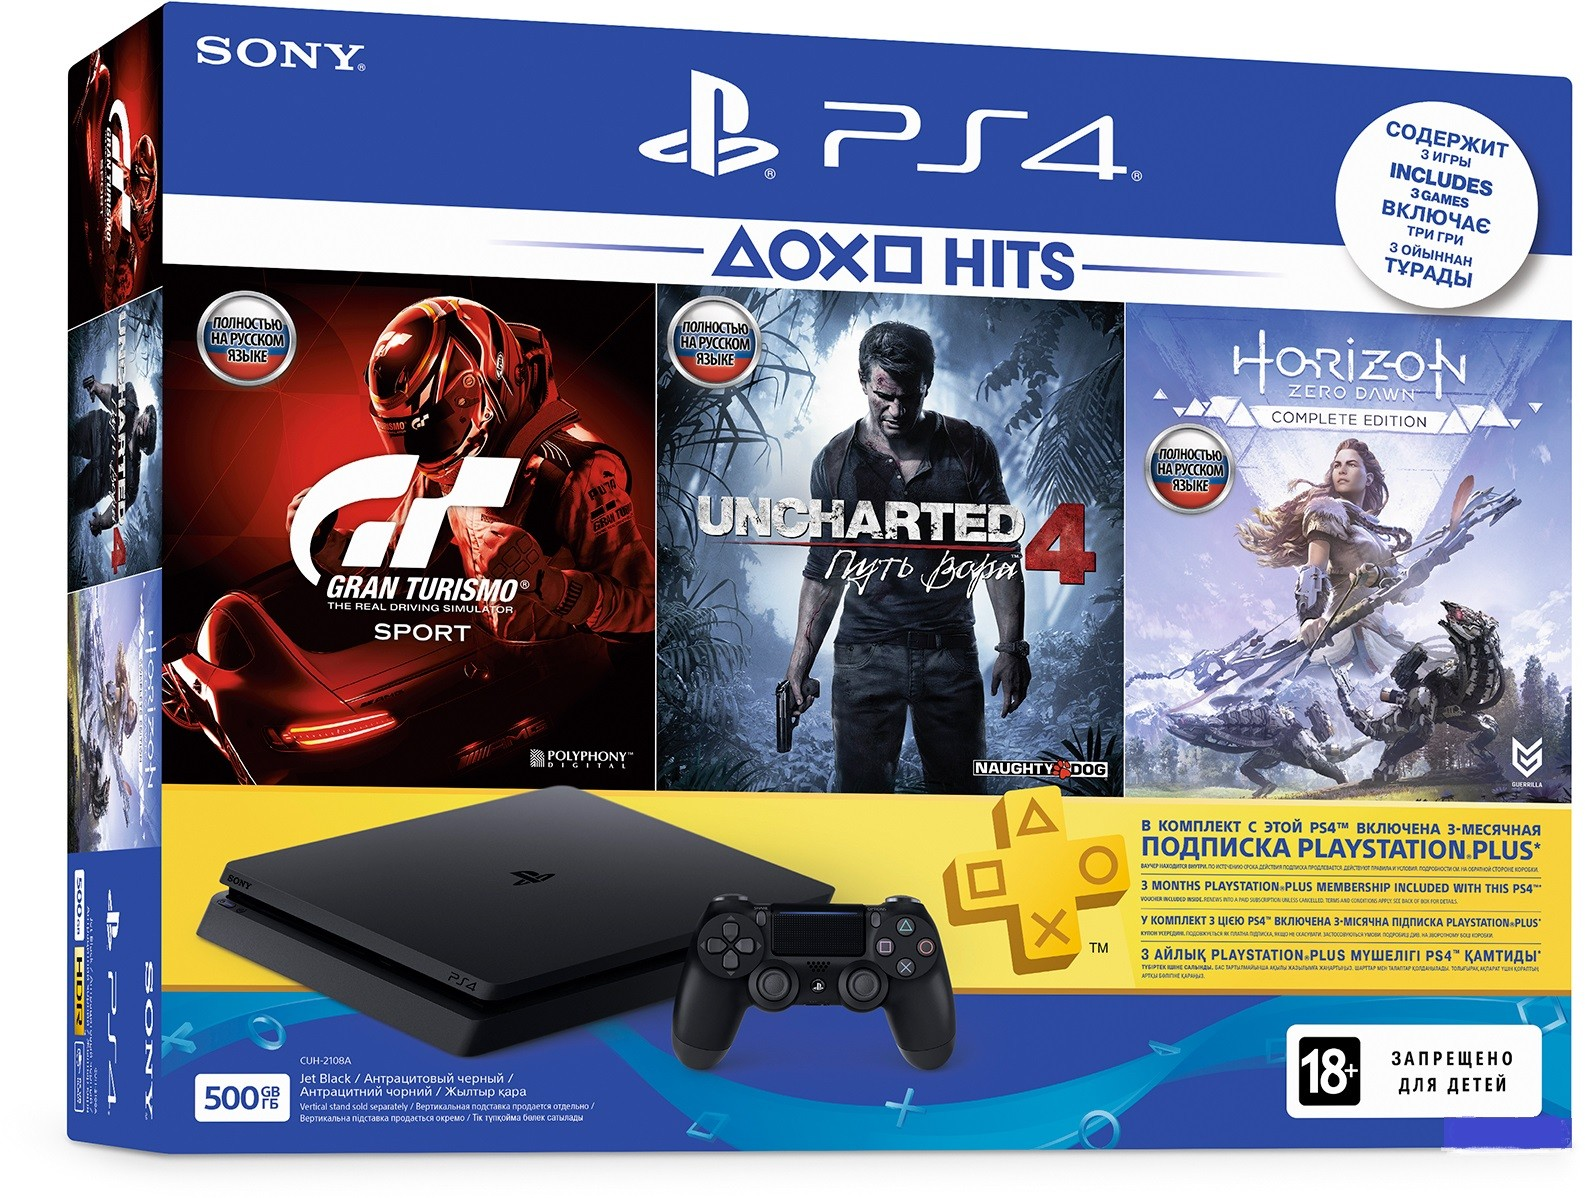 Sony PlayStation 4 Slim 500 GB Black Bundle + Gran Turismo Sport + Uncharted 4 + Horizon Zero Dawn. Complete Edition + PSPlus 3 месяца